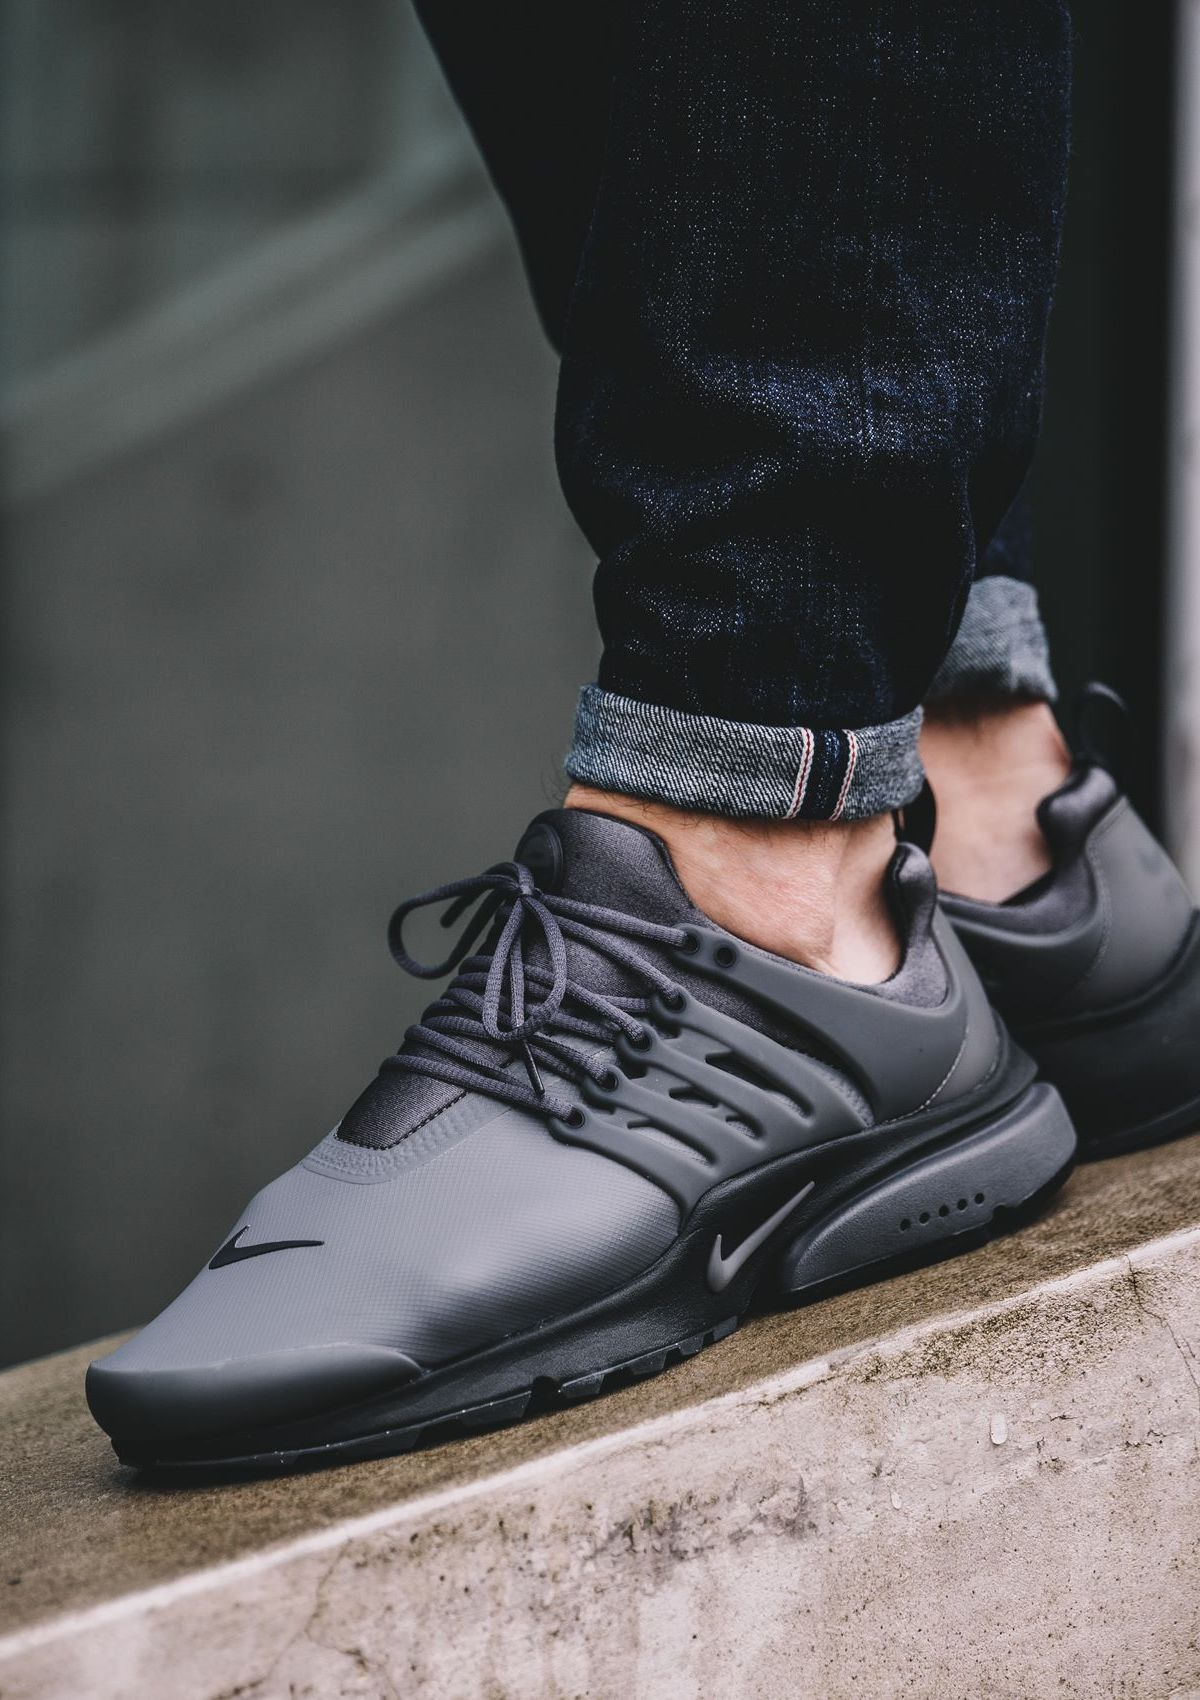 Nike Air Presto Low Utility grey  sneakernews  Sneakers  StreetStyle  Kicks 63a7da276